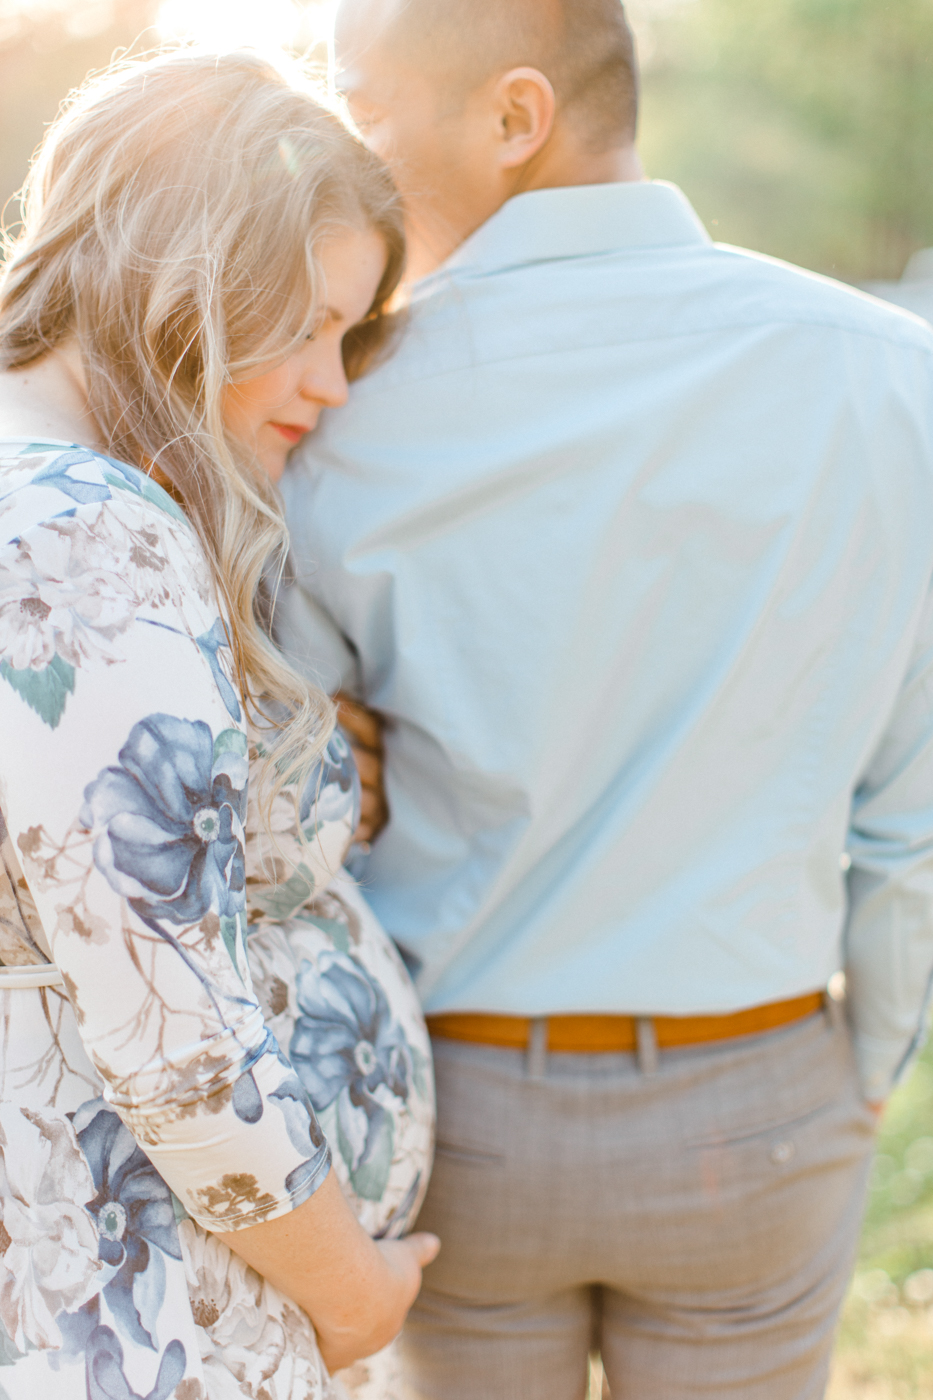 four corners photography atlanta engagement photographer georgia photographer fine art film photographer atlanta natural light photographer newborn photographer family photographer fine art maternity photographer-30.jpg